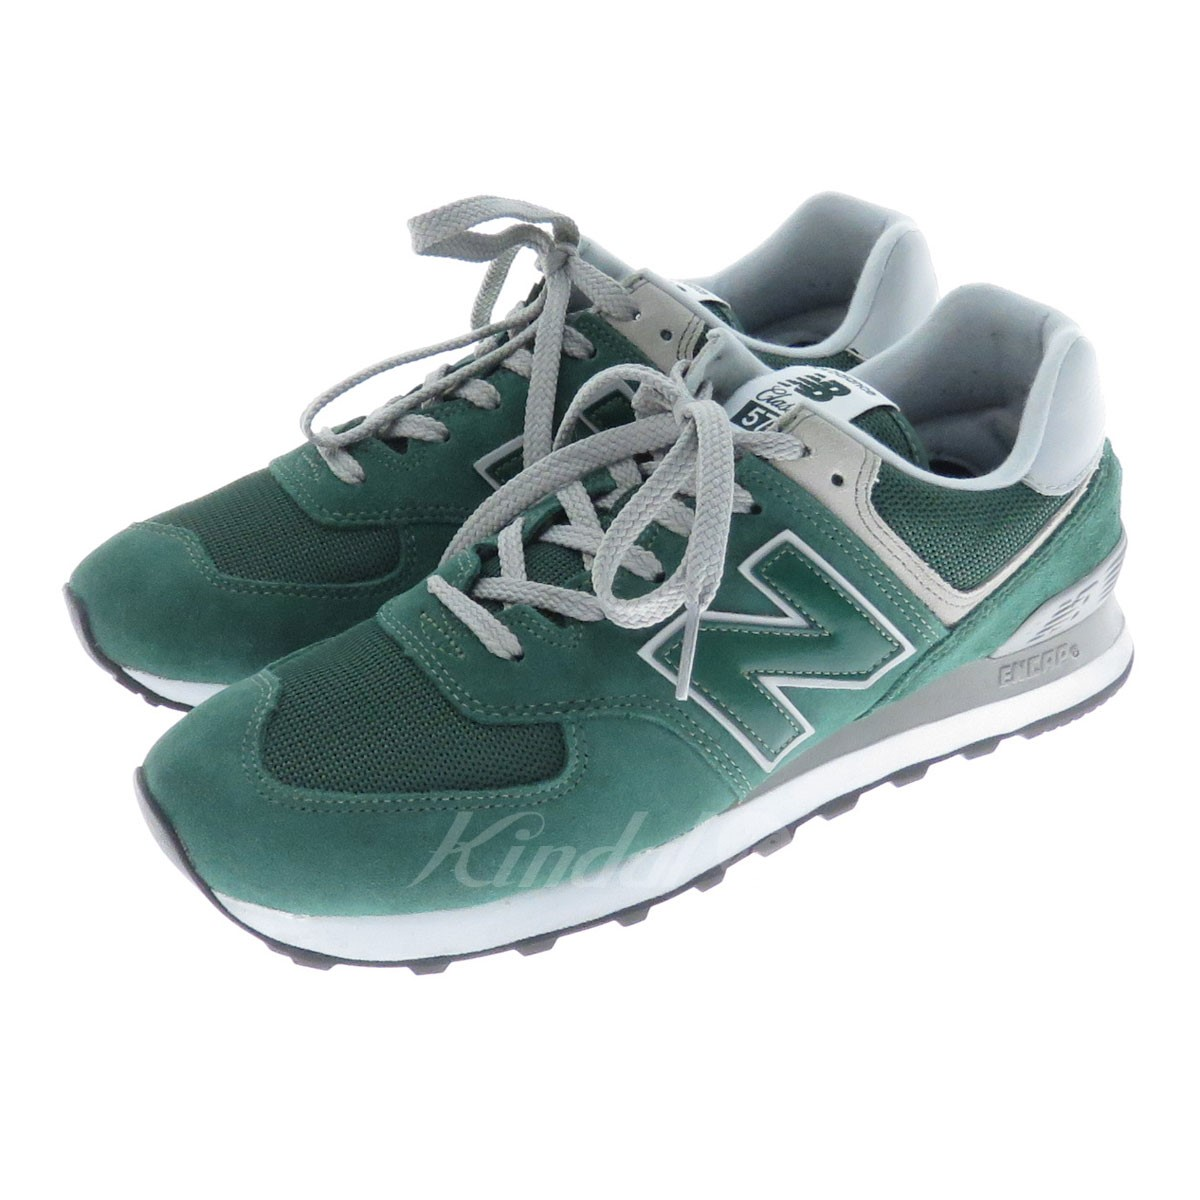 new product 15f83 215d5 NEW BALANCE ML574EGR sneakers green size: 27. 5cm (New Balance)